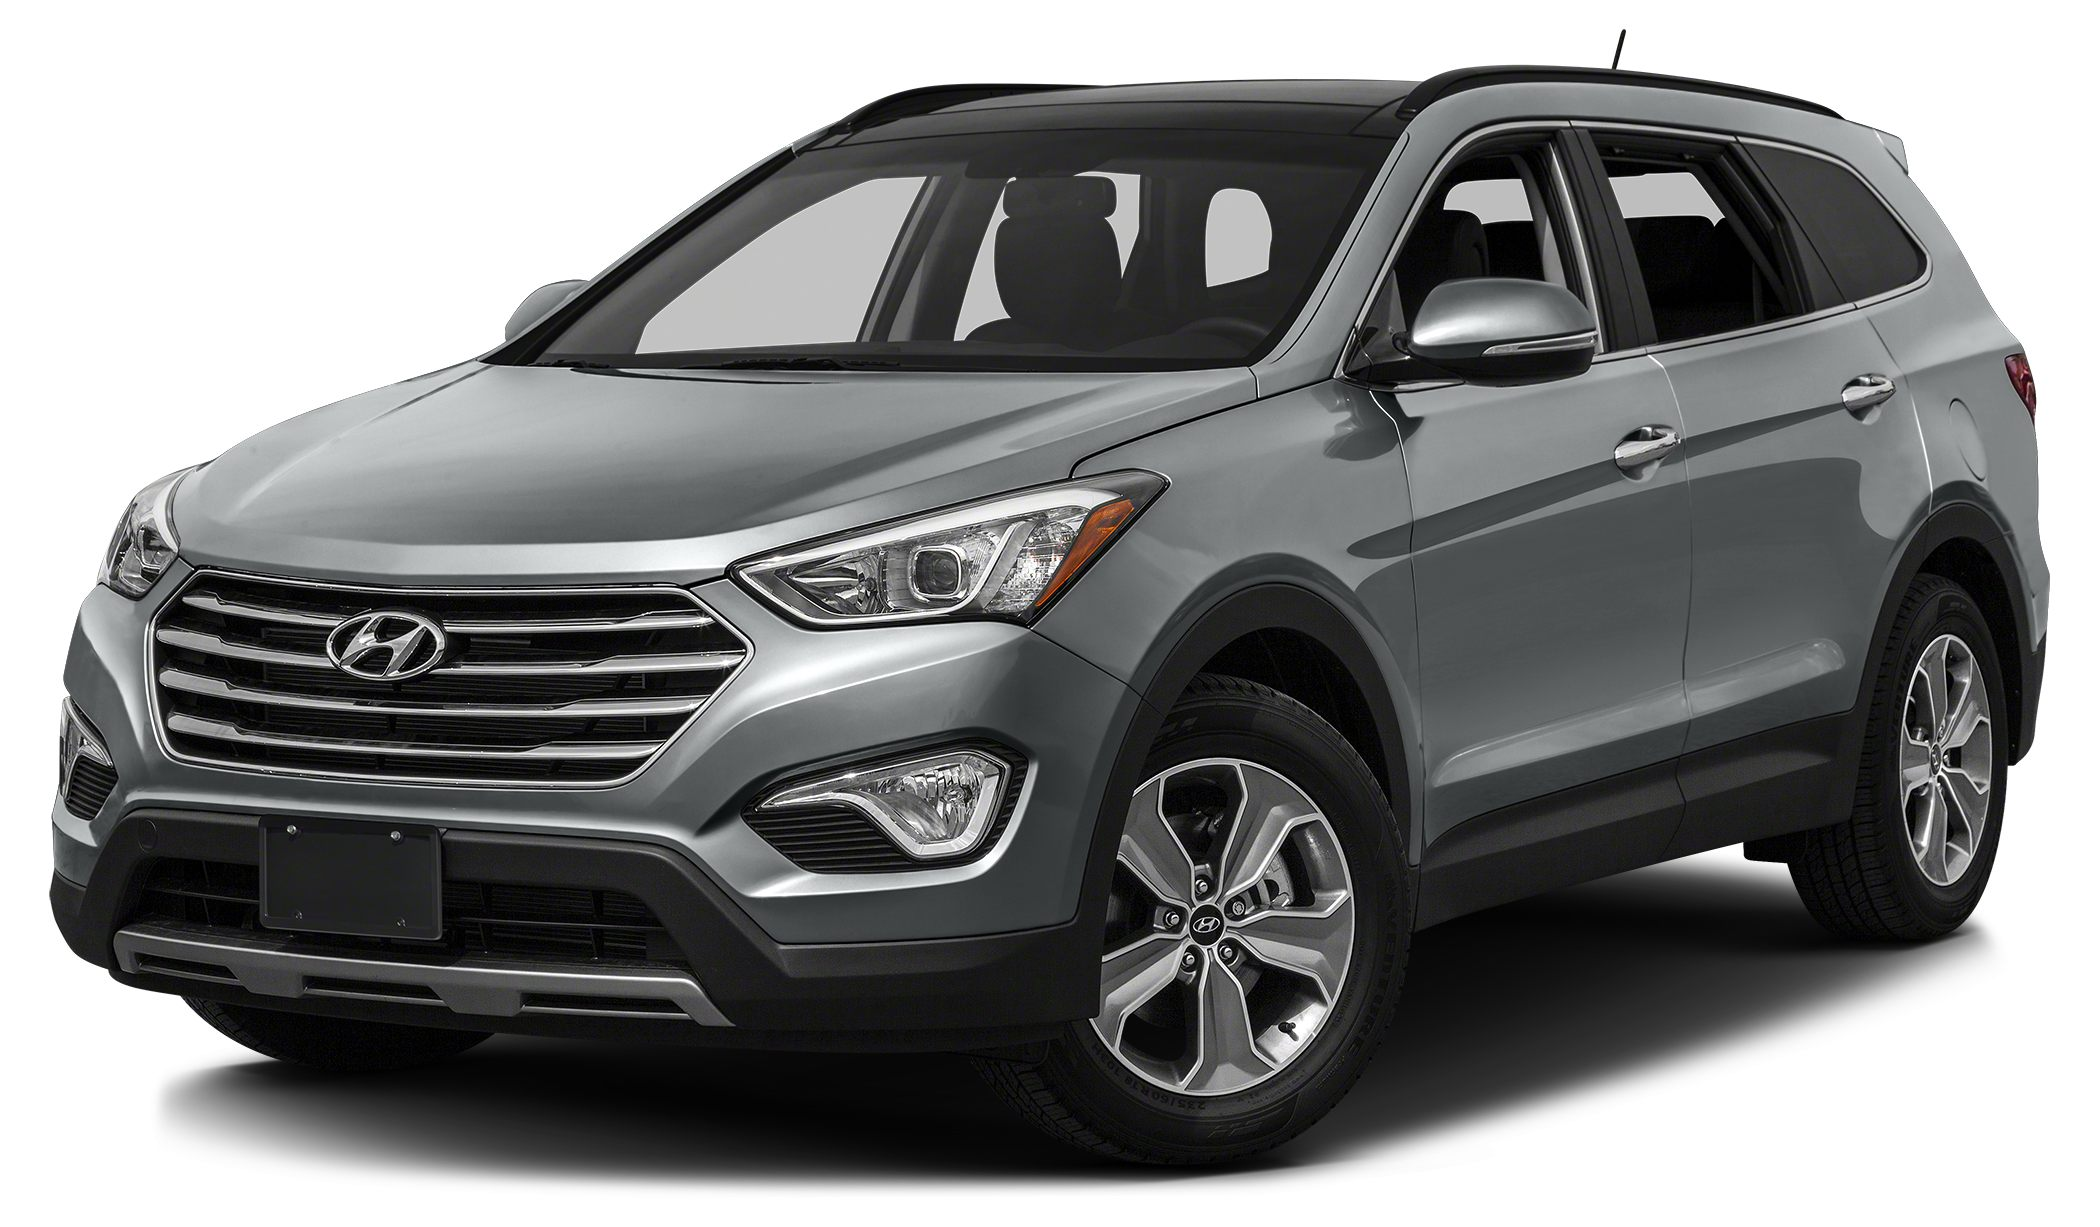 2016 Hyundai Santa Fe Limited Active On-Demand AWD System w AWD Lock 8-Inch Touchscreen Navigati